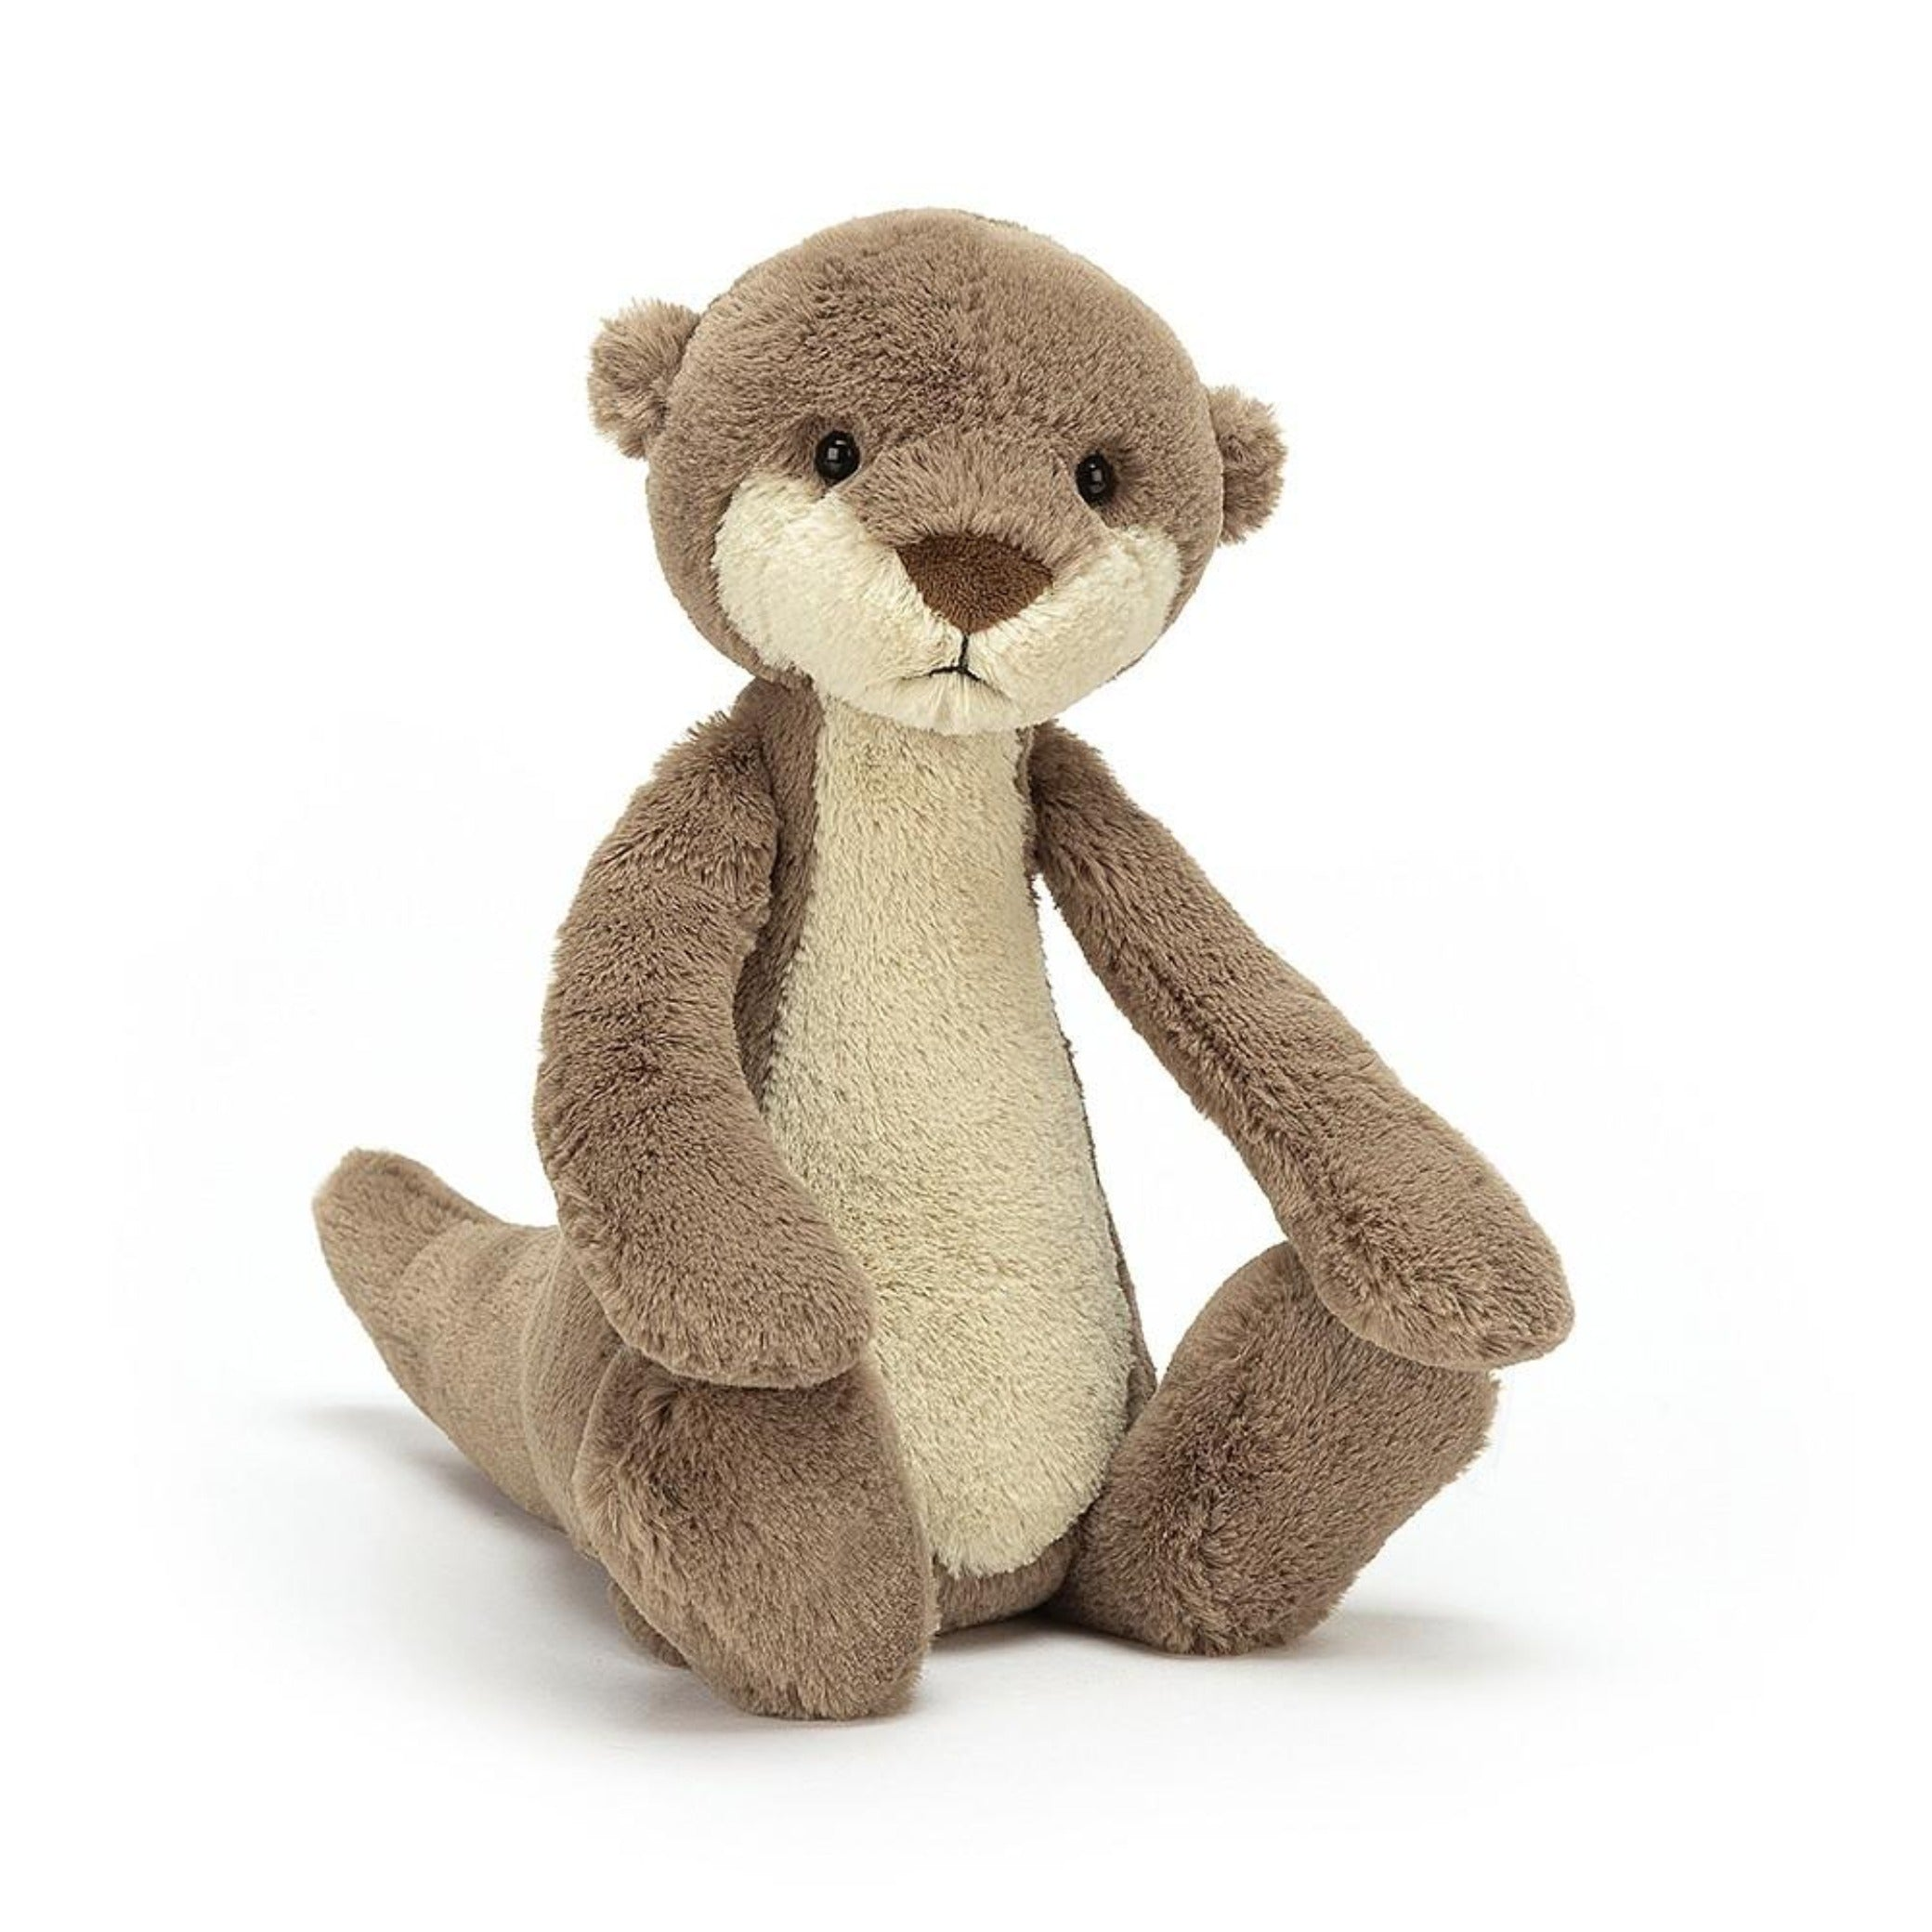 Jellycat plush otter toy